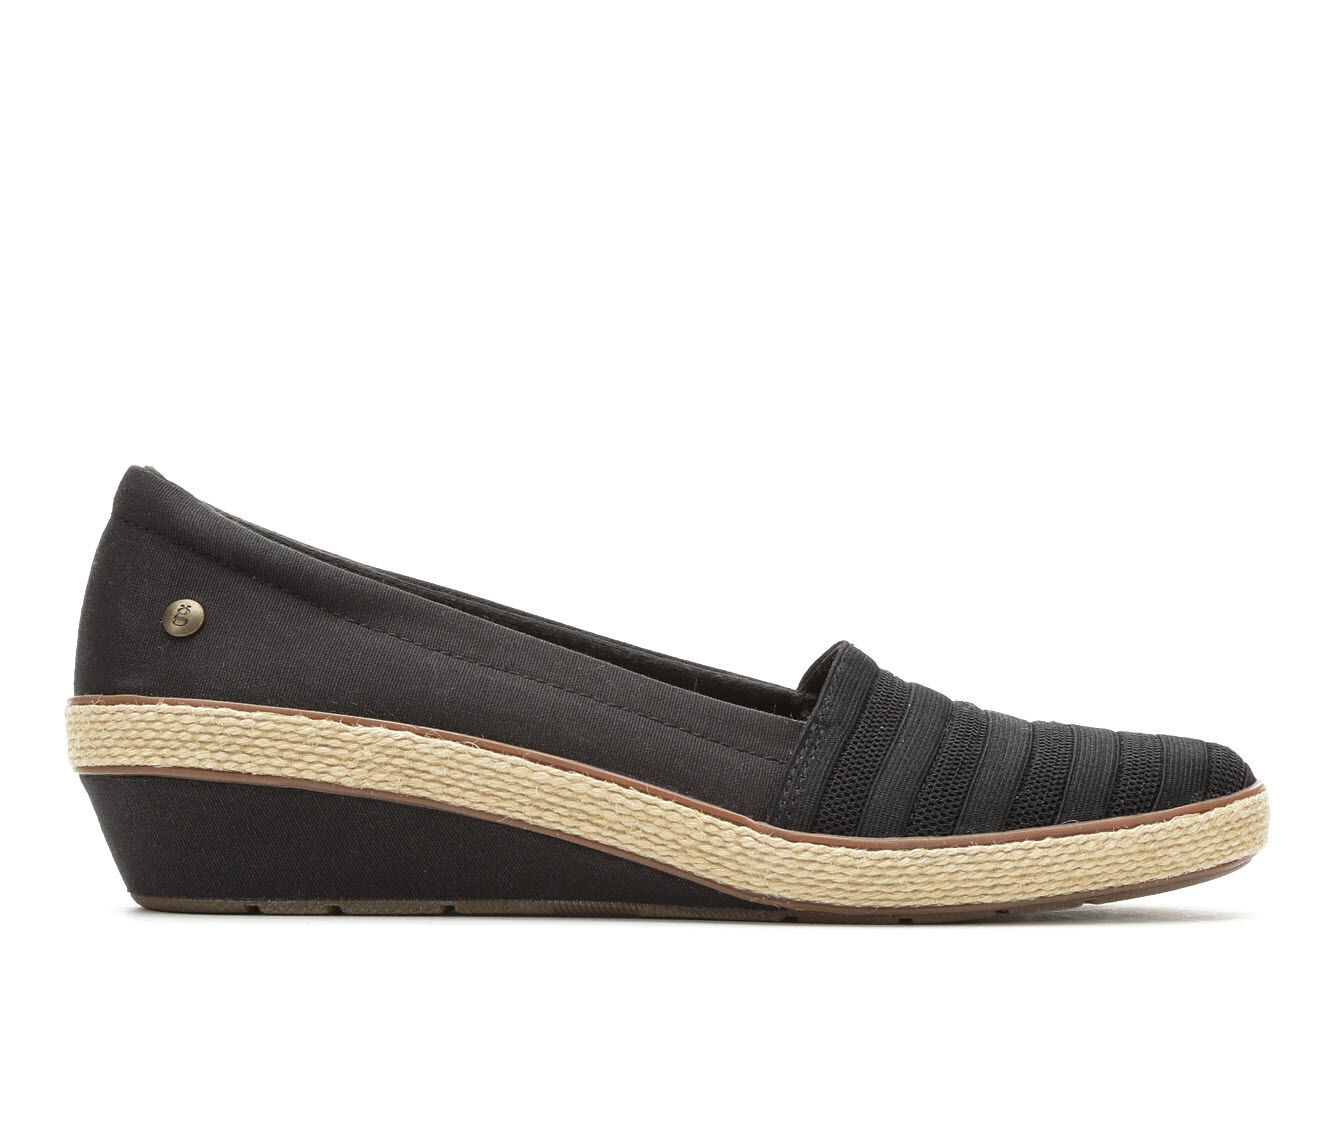 Adorable Women's Grasshoppers Blaise Wedges Black